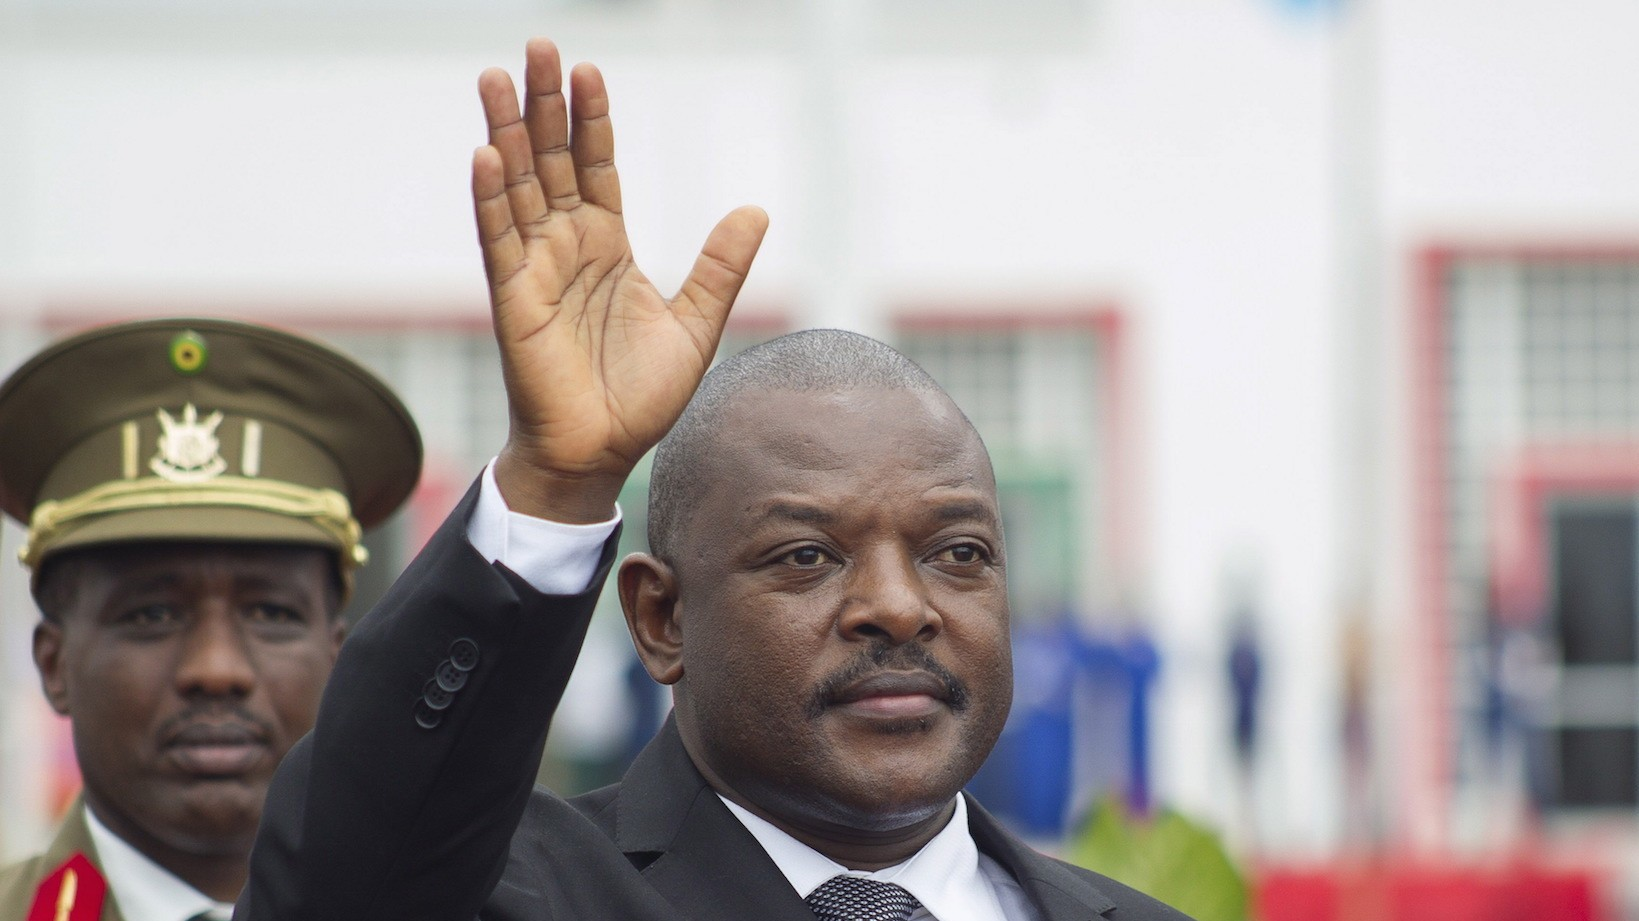 Burundi Just Arrested a Comedian For Making Fun of the President